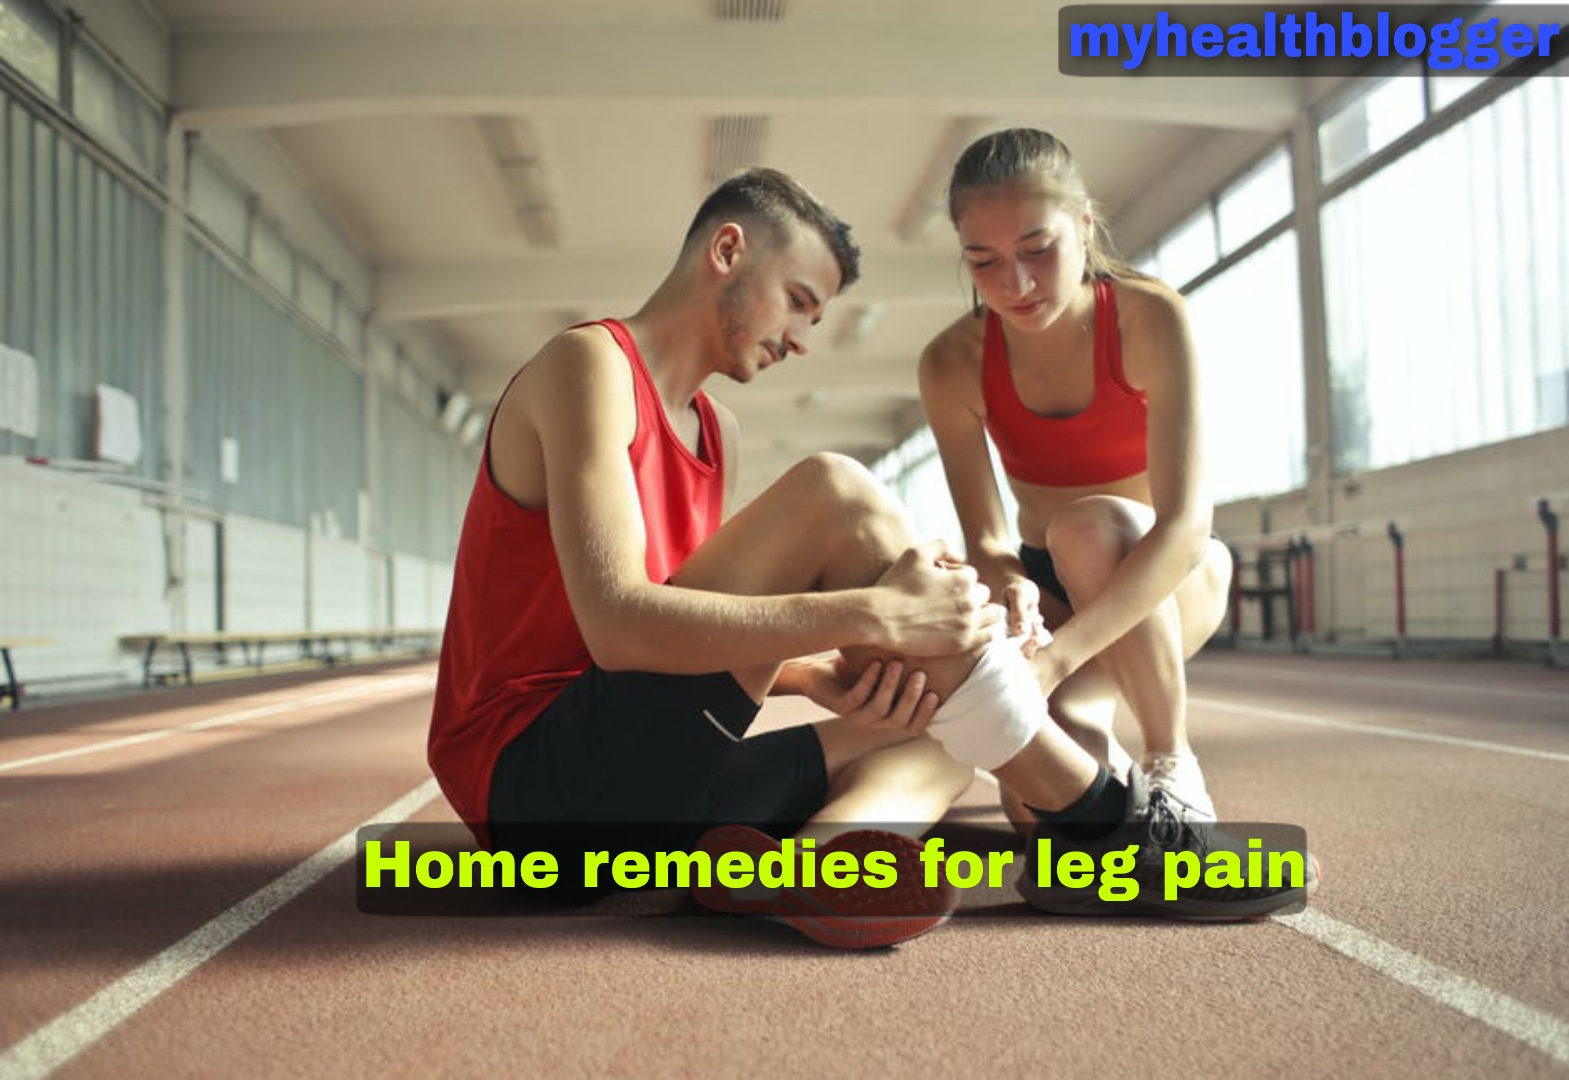 Home Remedies and Treatment for leg pain